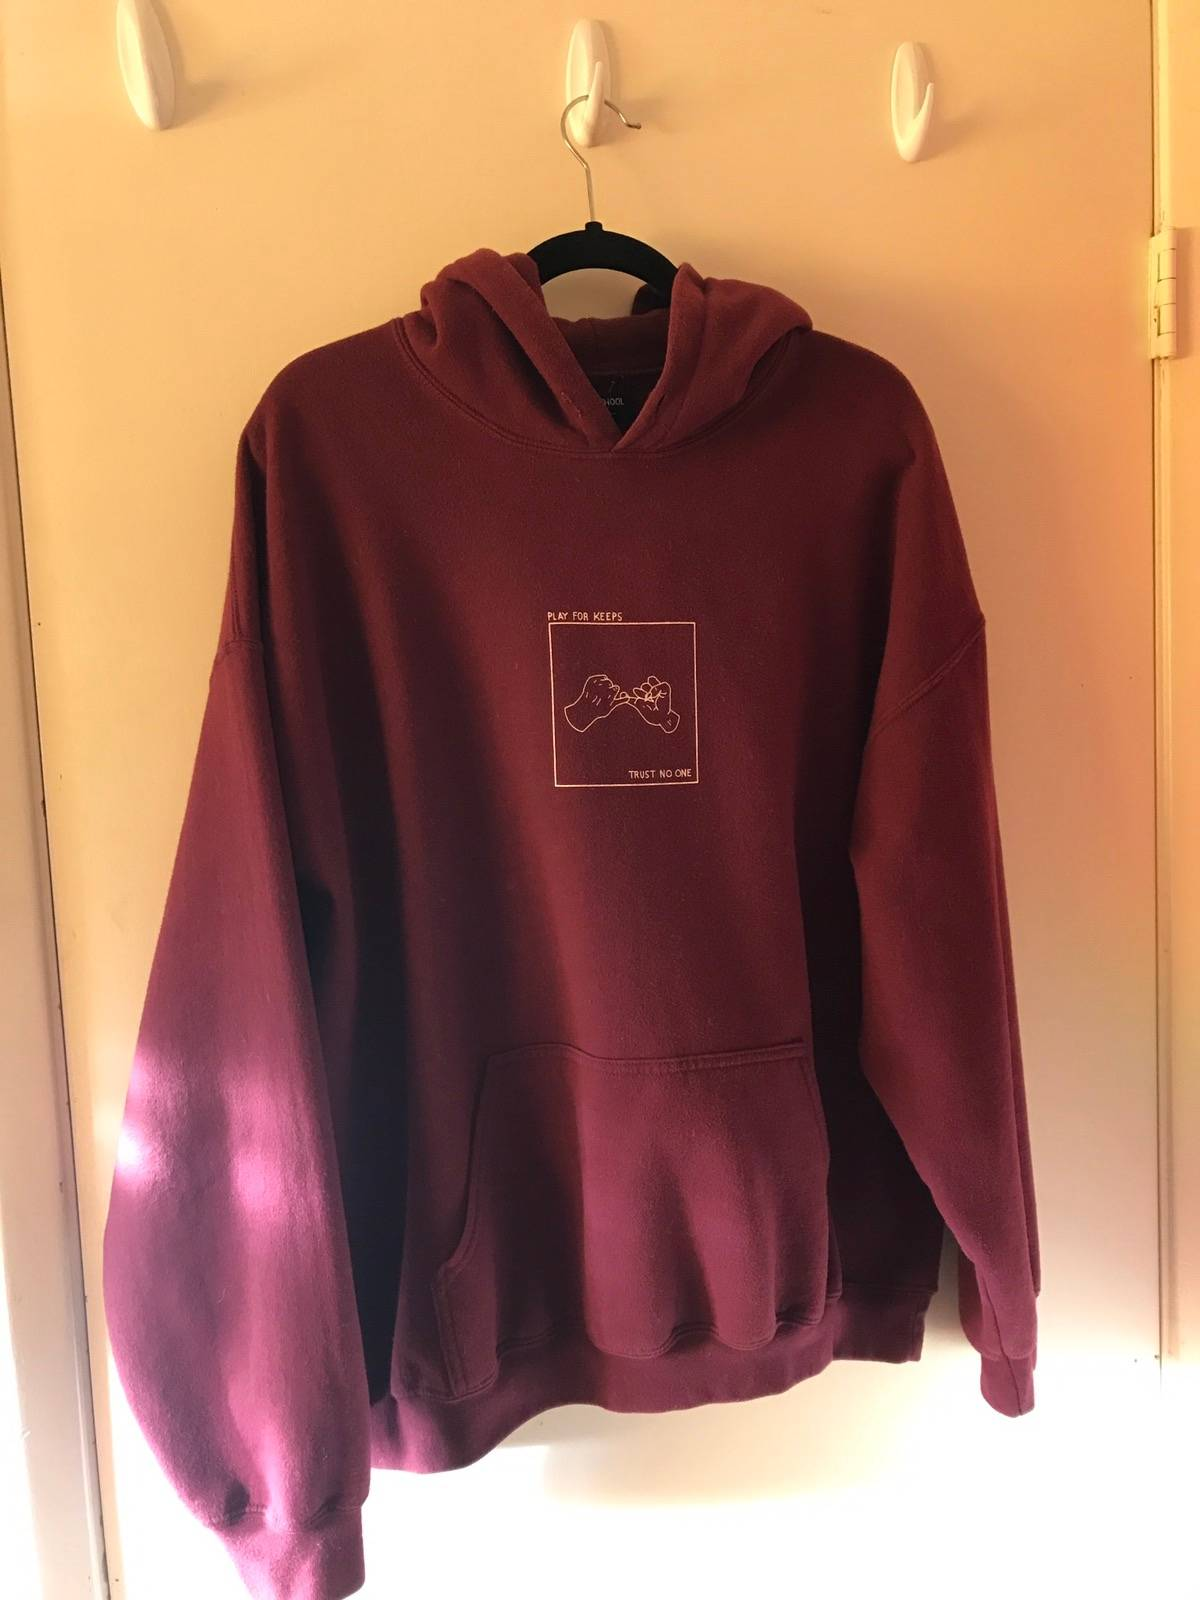 424 On Fairfax Play For Keeps Hoodie Size Xl Sweatshirts